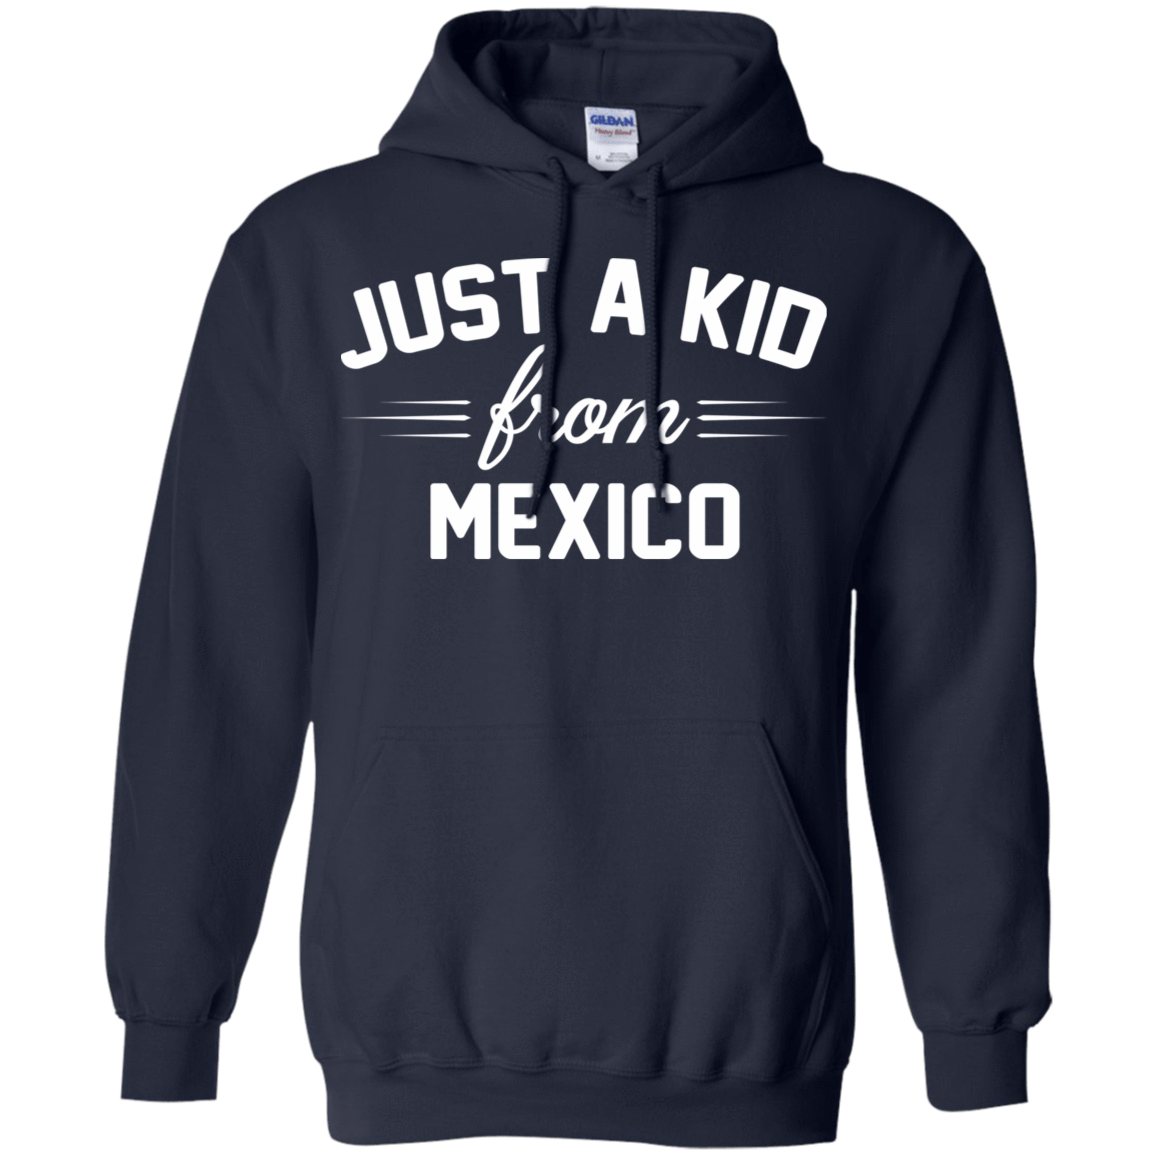 Just a Kid Store | Mexico T-Shirts, Hoodie, Tank 541-4742-72091592-23135 - Tee Ript